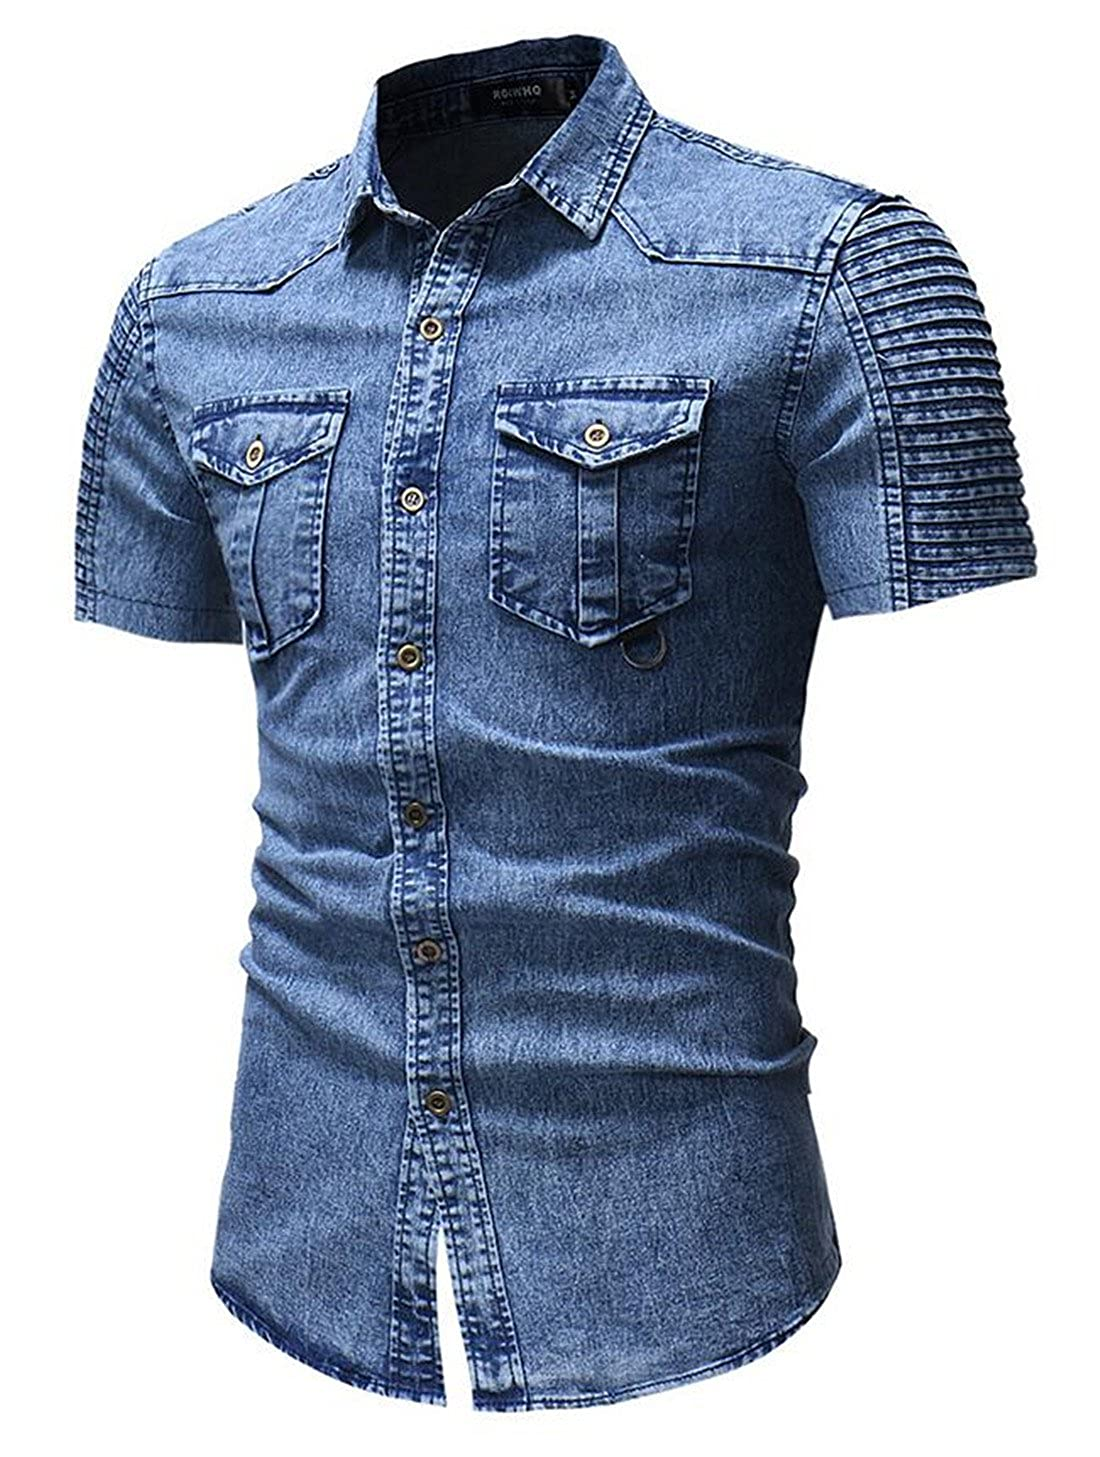 BLTR Men Summer Cotton Short Sleeve Slim Fit Button Down Denim Shirt